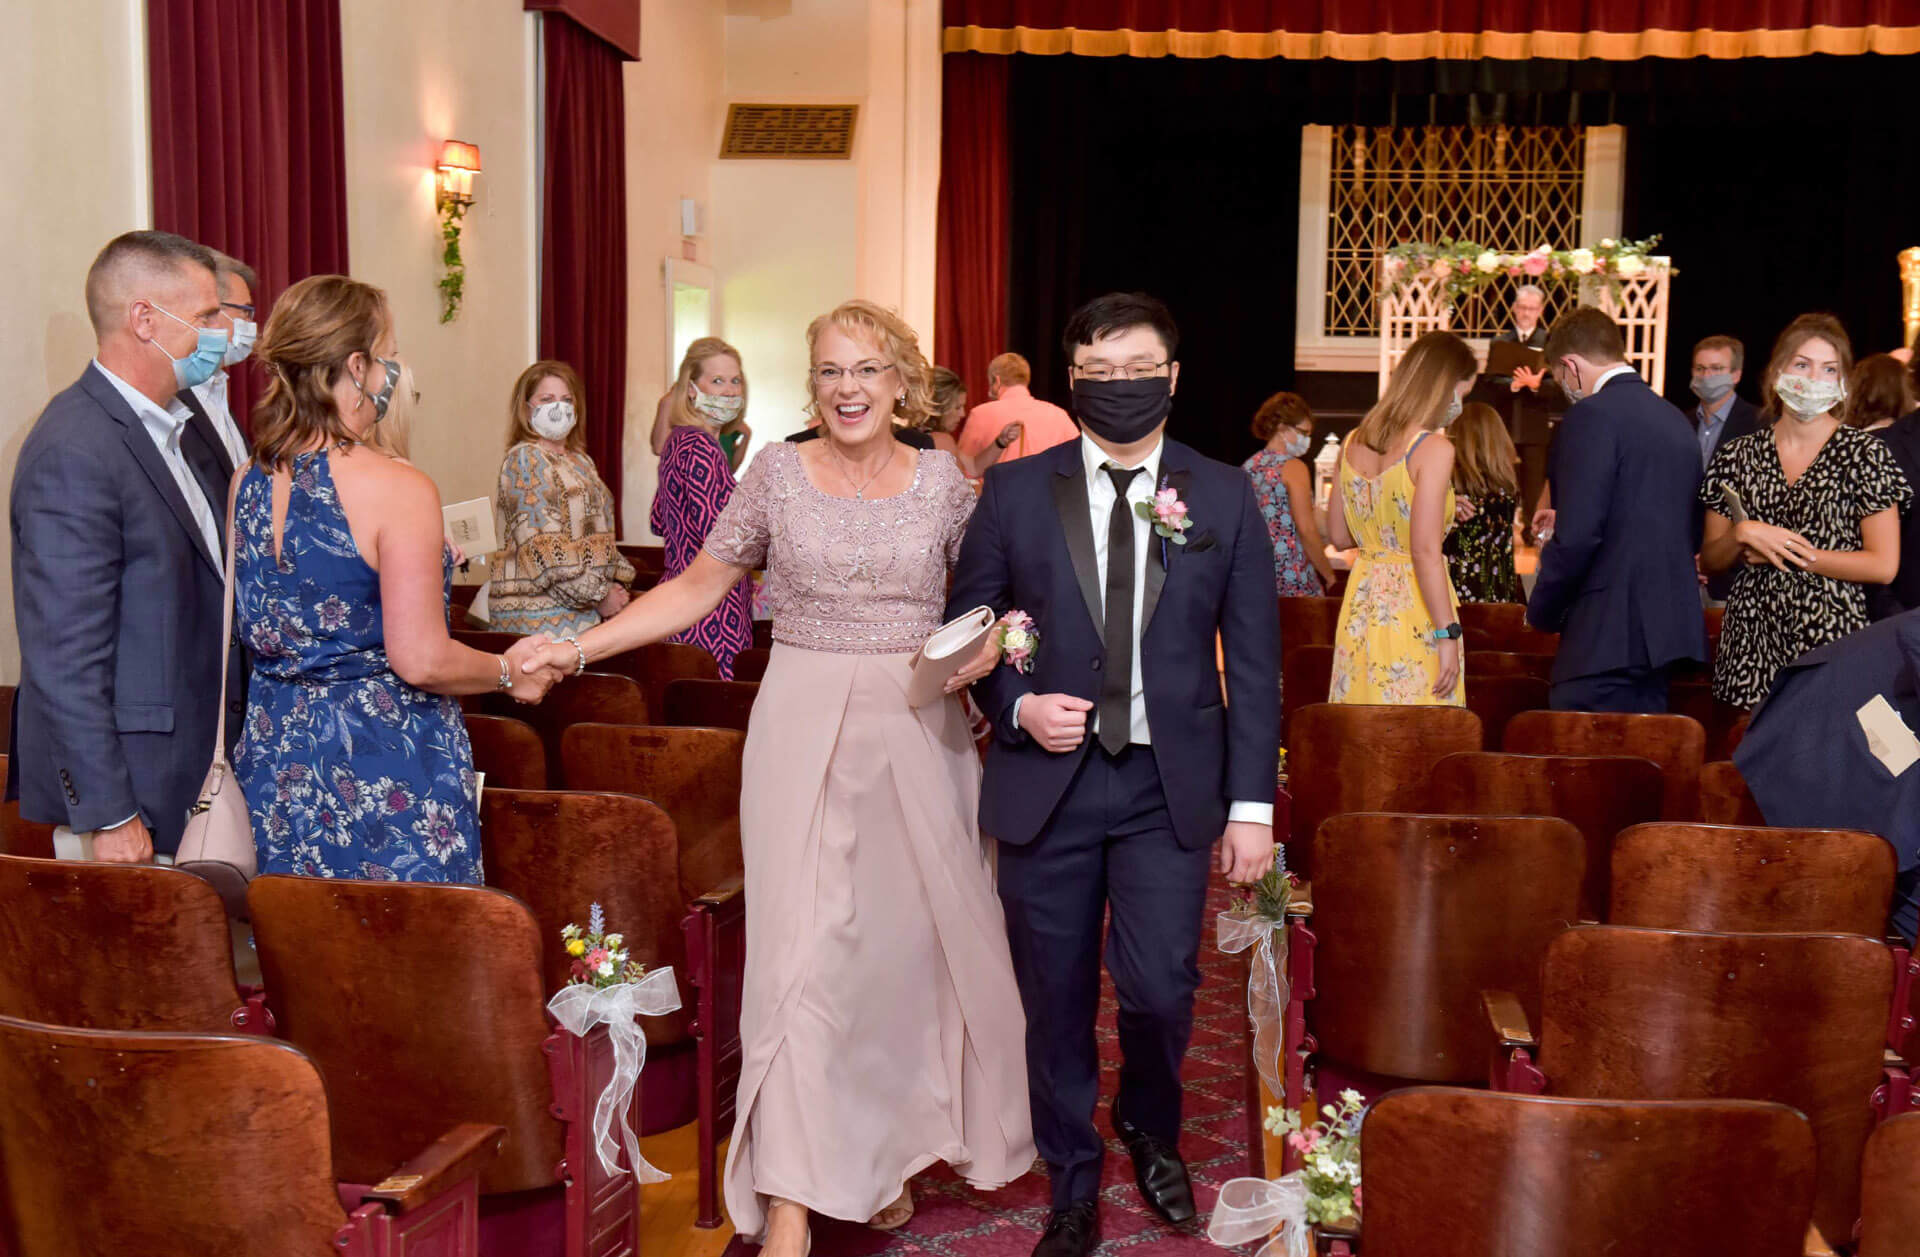 The mother of the bride is escorted down the aisle by her son after my first Covid wedding on a hot wedding day at Waldenwoods Resort in Howell, Michigan during the pandemic.